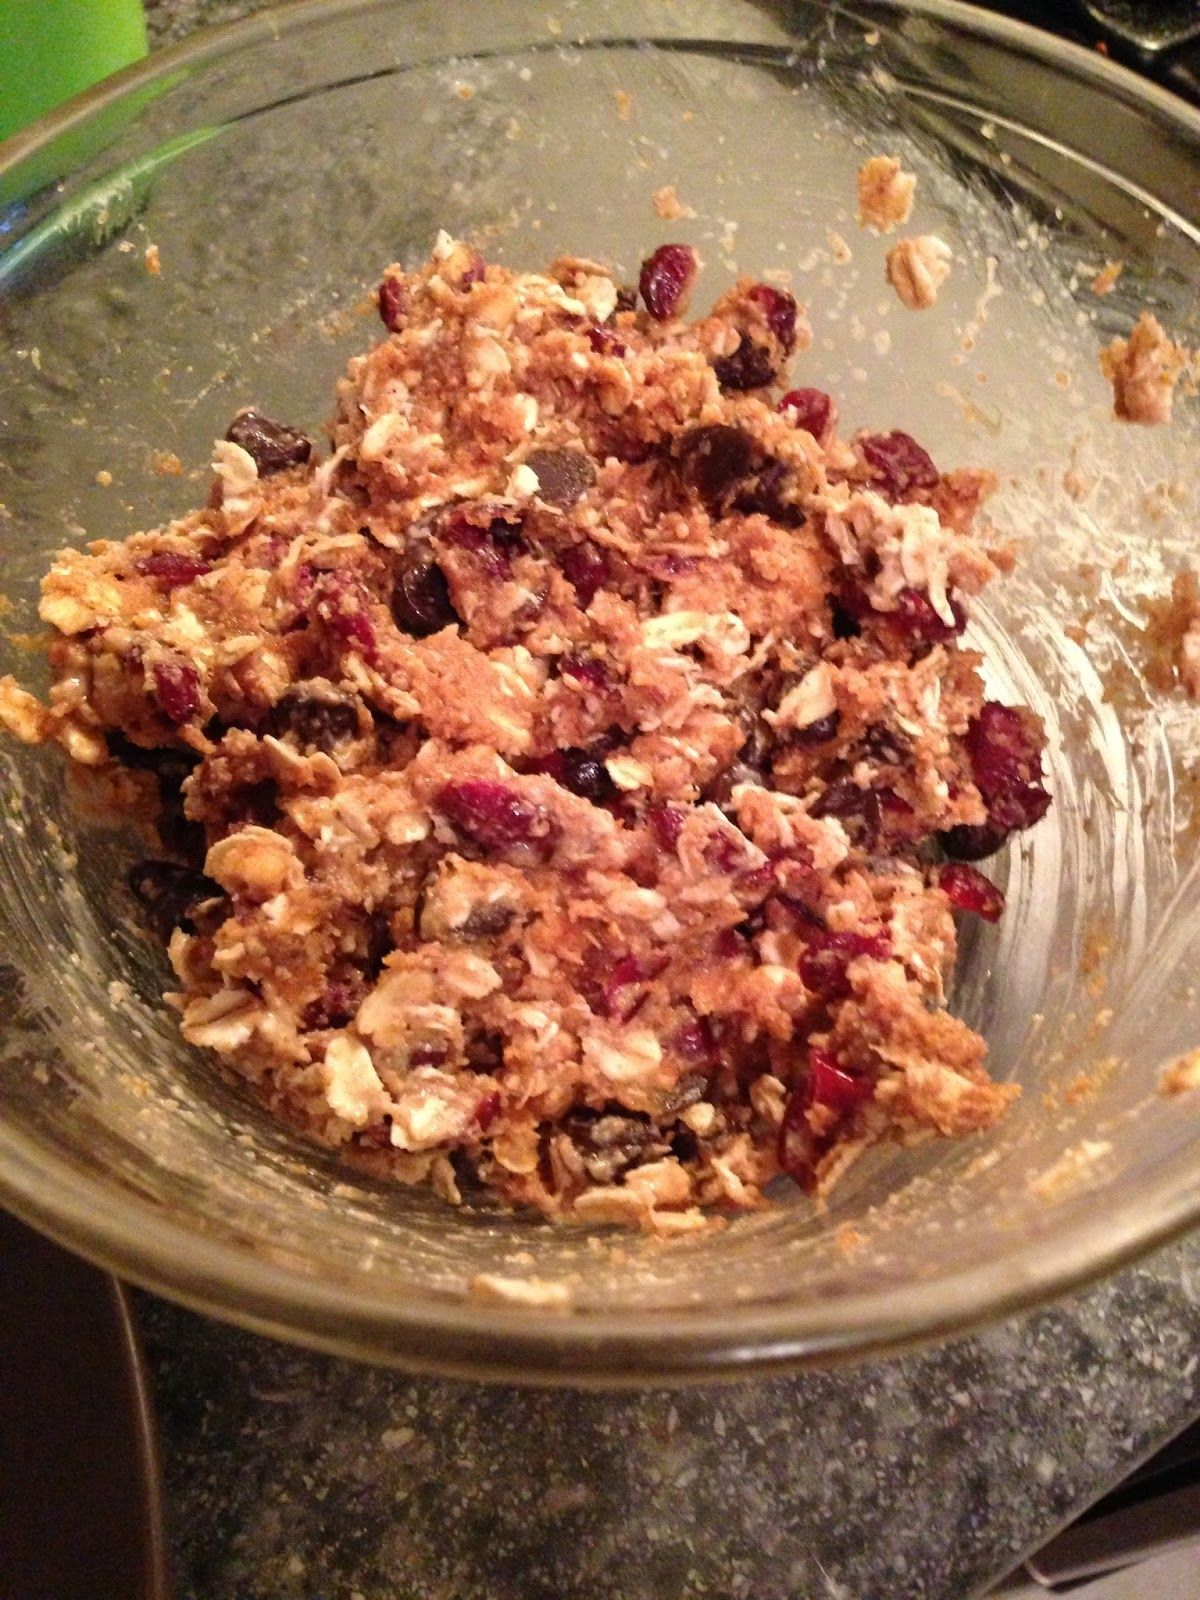 taylor made: 5-minute no-bake nut butter energy balls